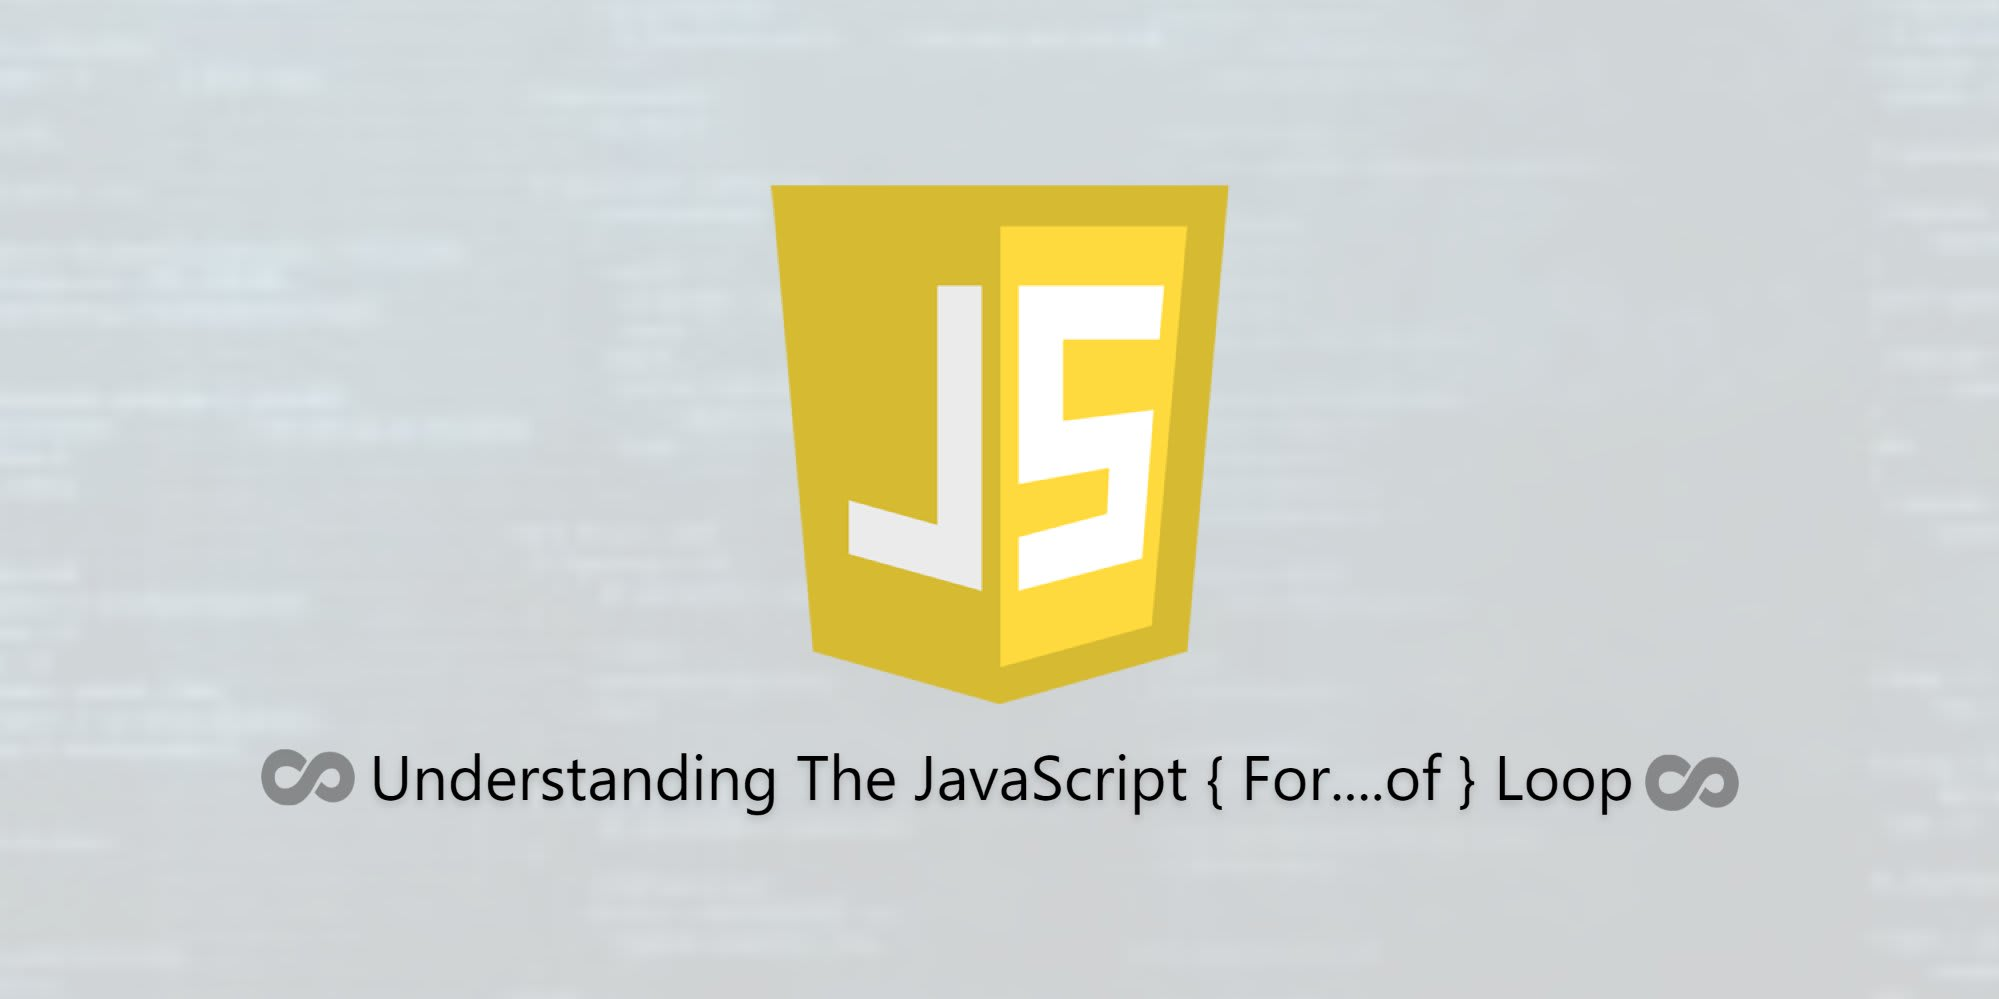 Understanding the JavaScript For...of Loop